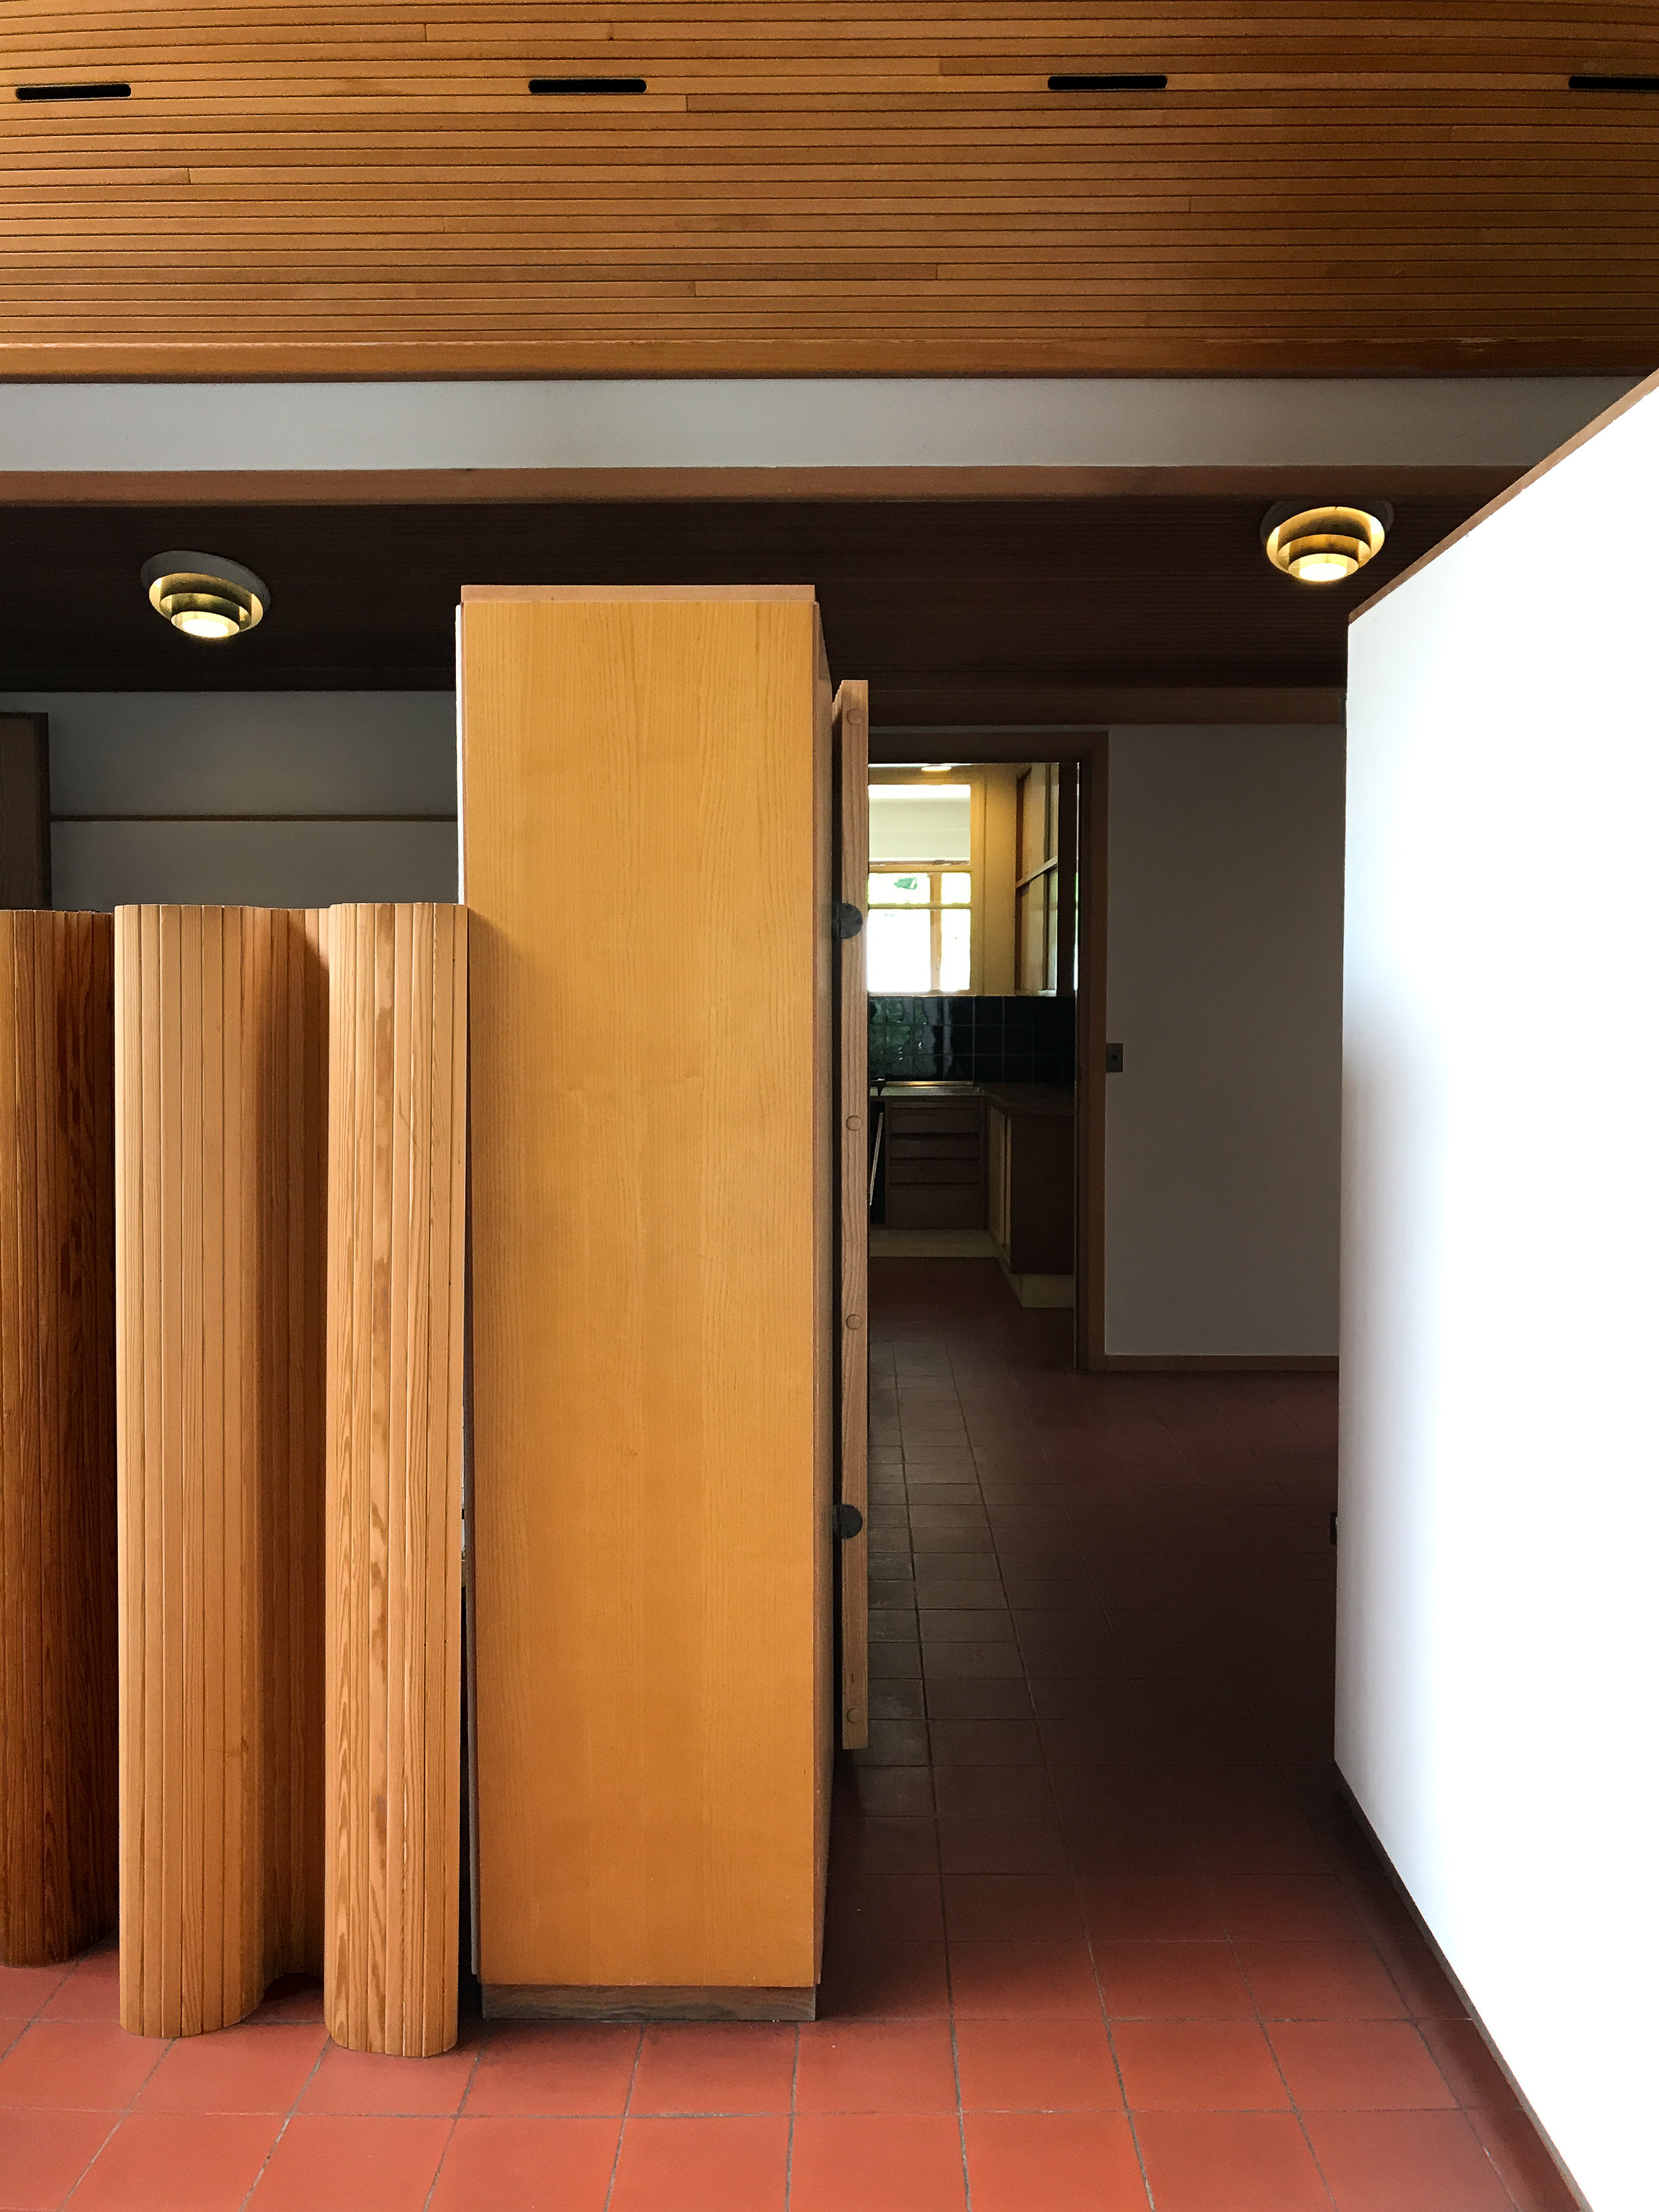 Mixed wood leading to private quarters